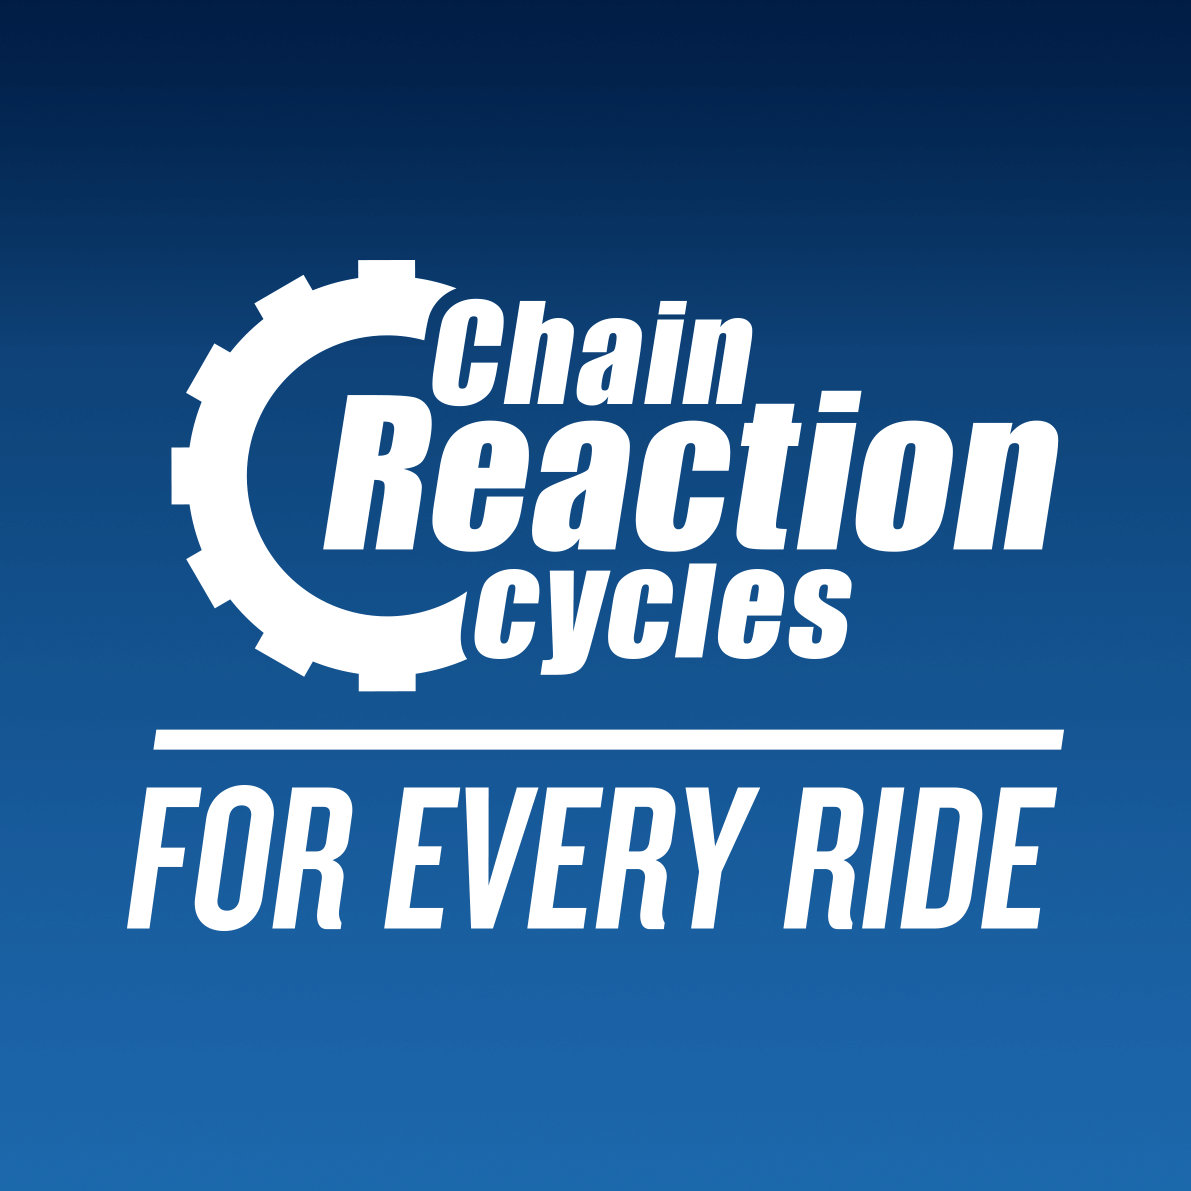 Chain Reactions Cycles Get On Your Bike Chain Reaction Bikes